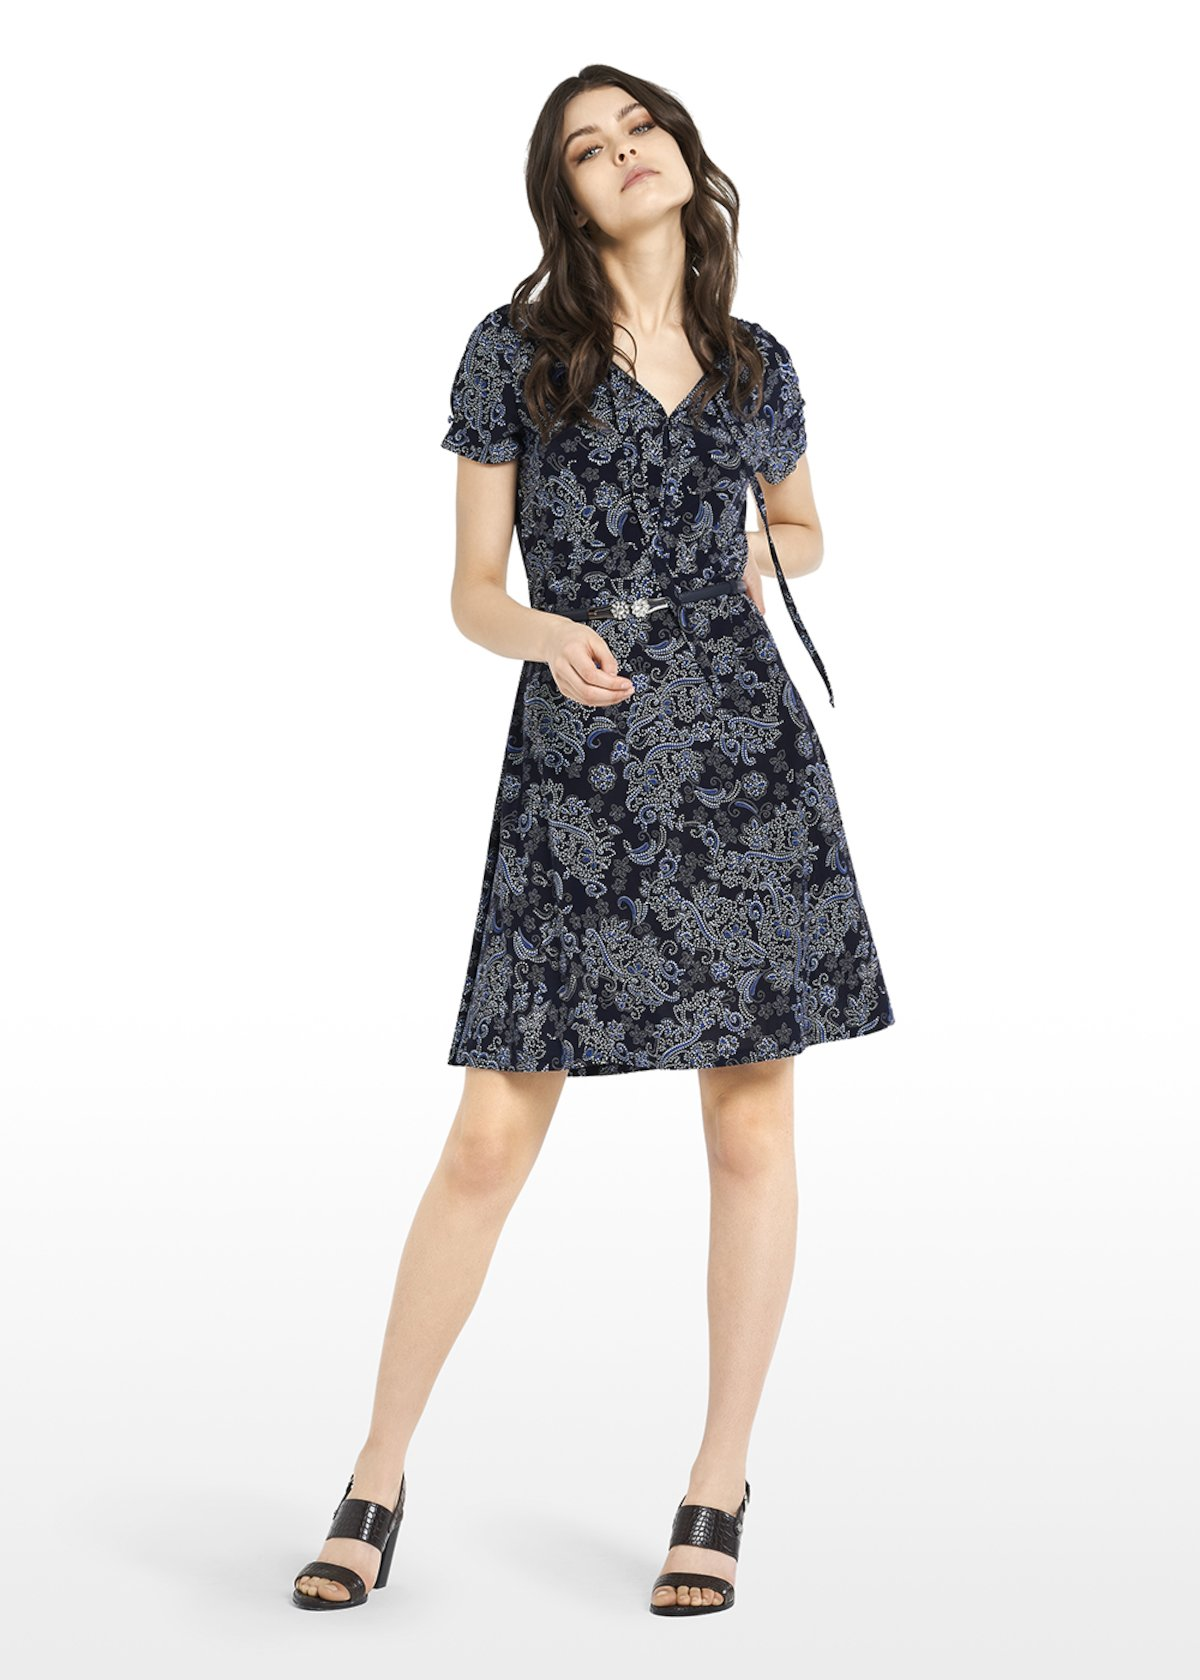 Jersey Afry dress Paisley pattern with bow - Blue / Avion Fantasia - Woman - Category image